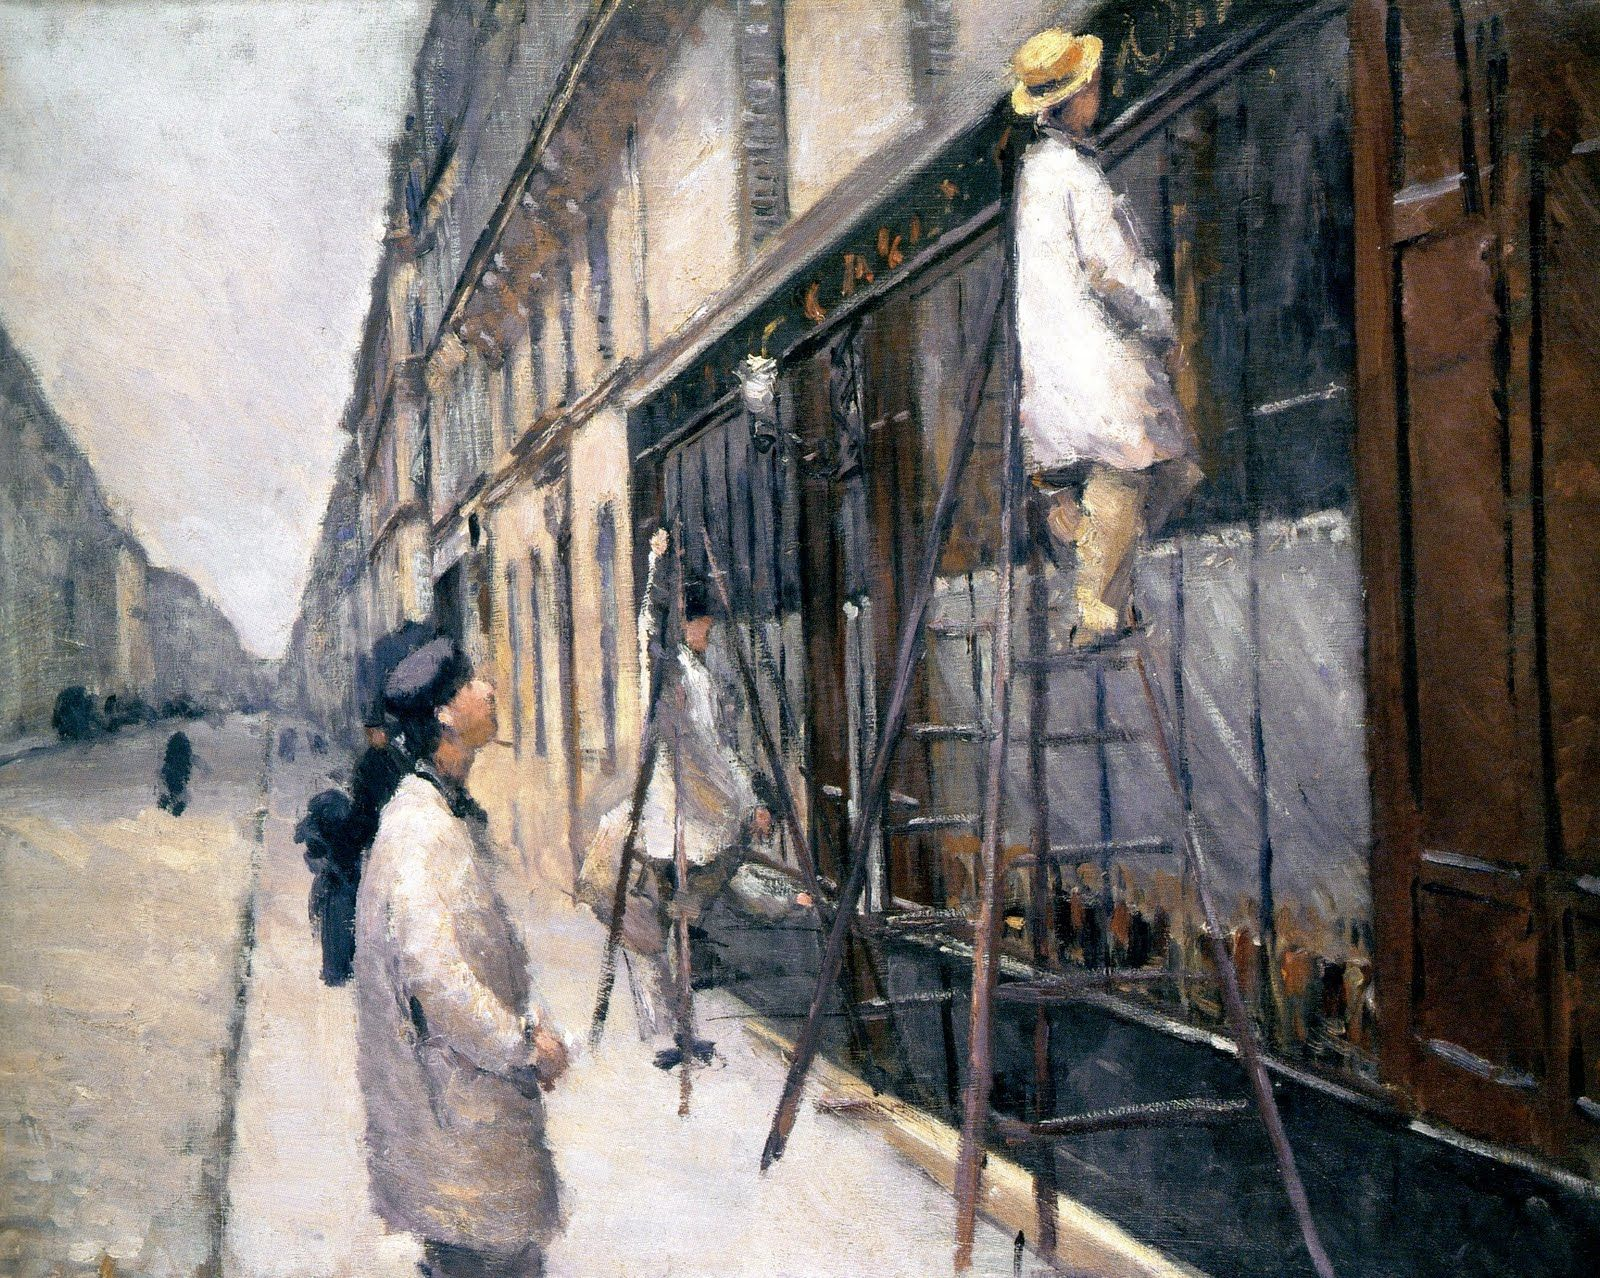 Gustave caillebotte the house painters